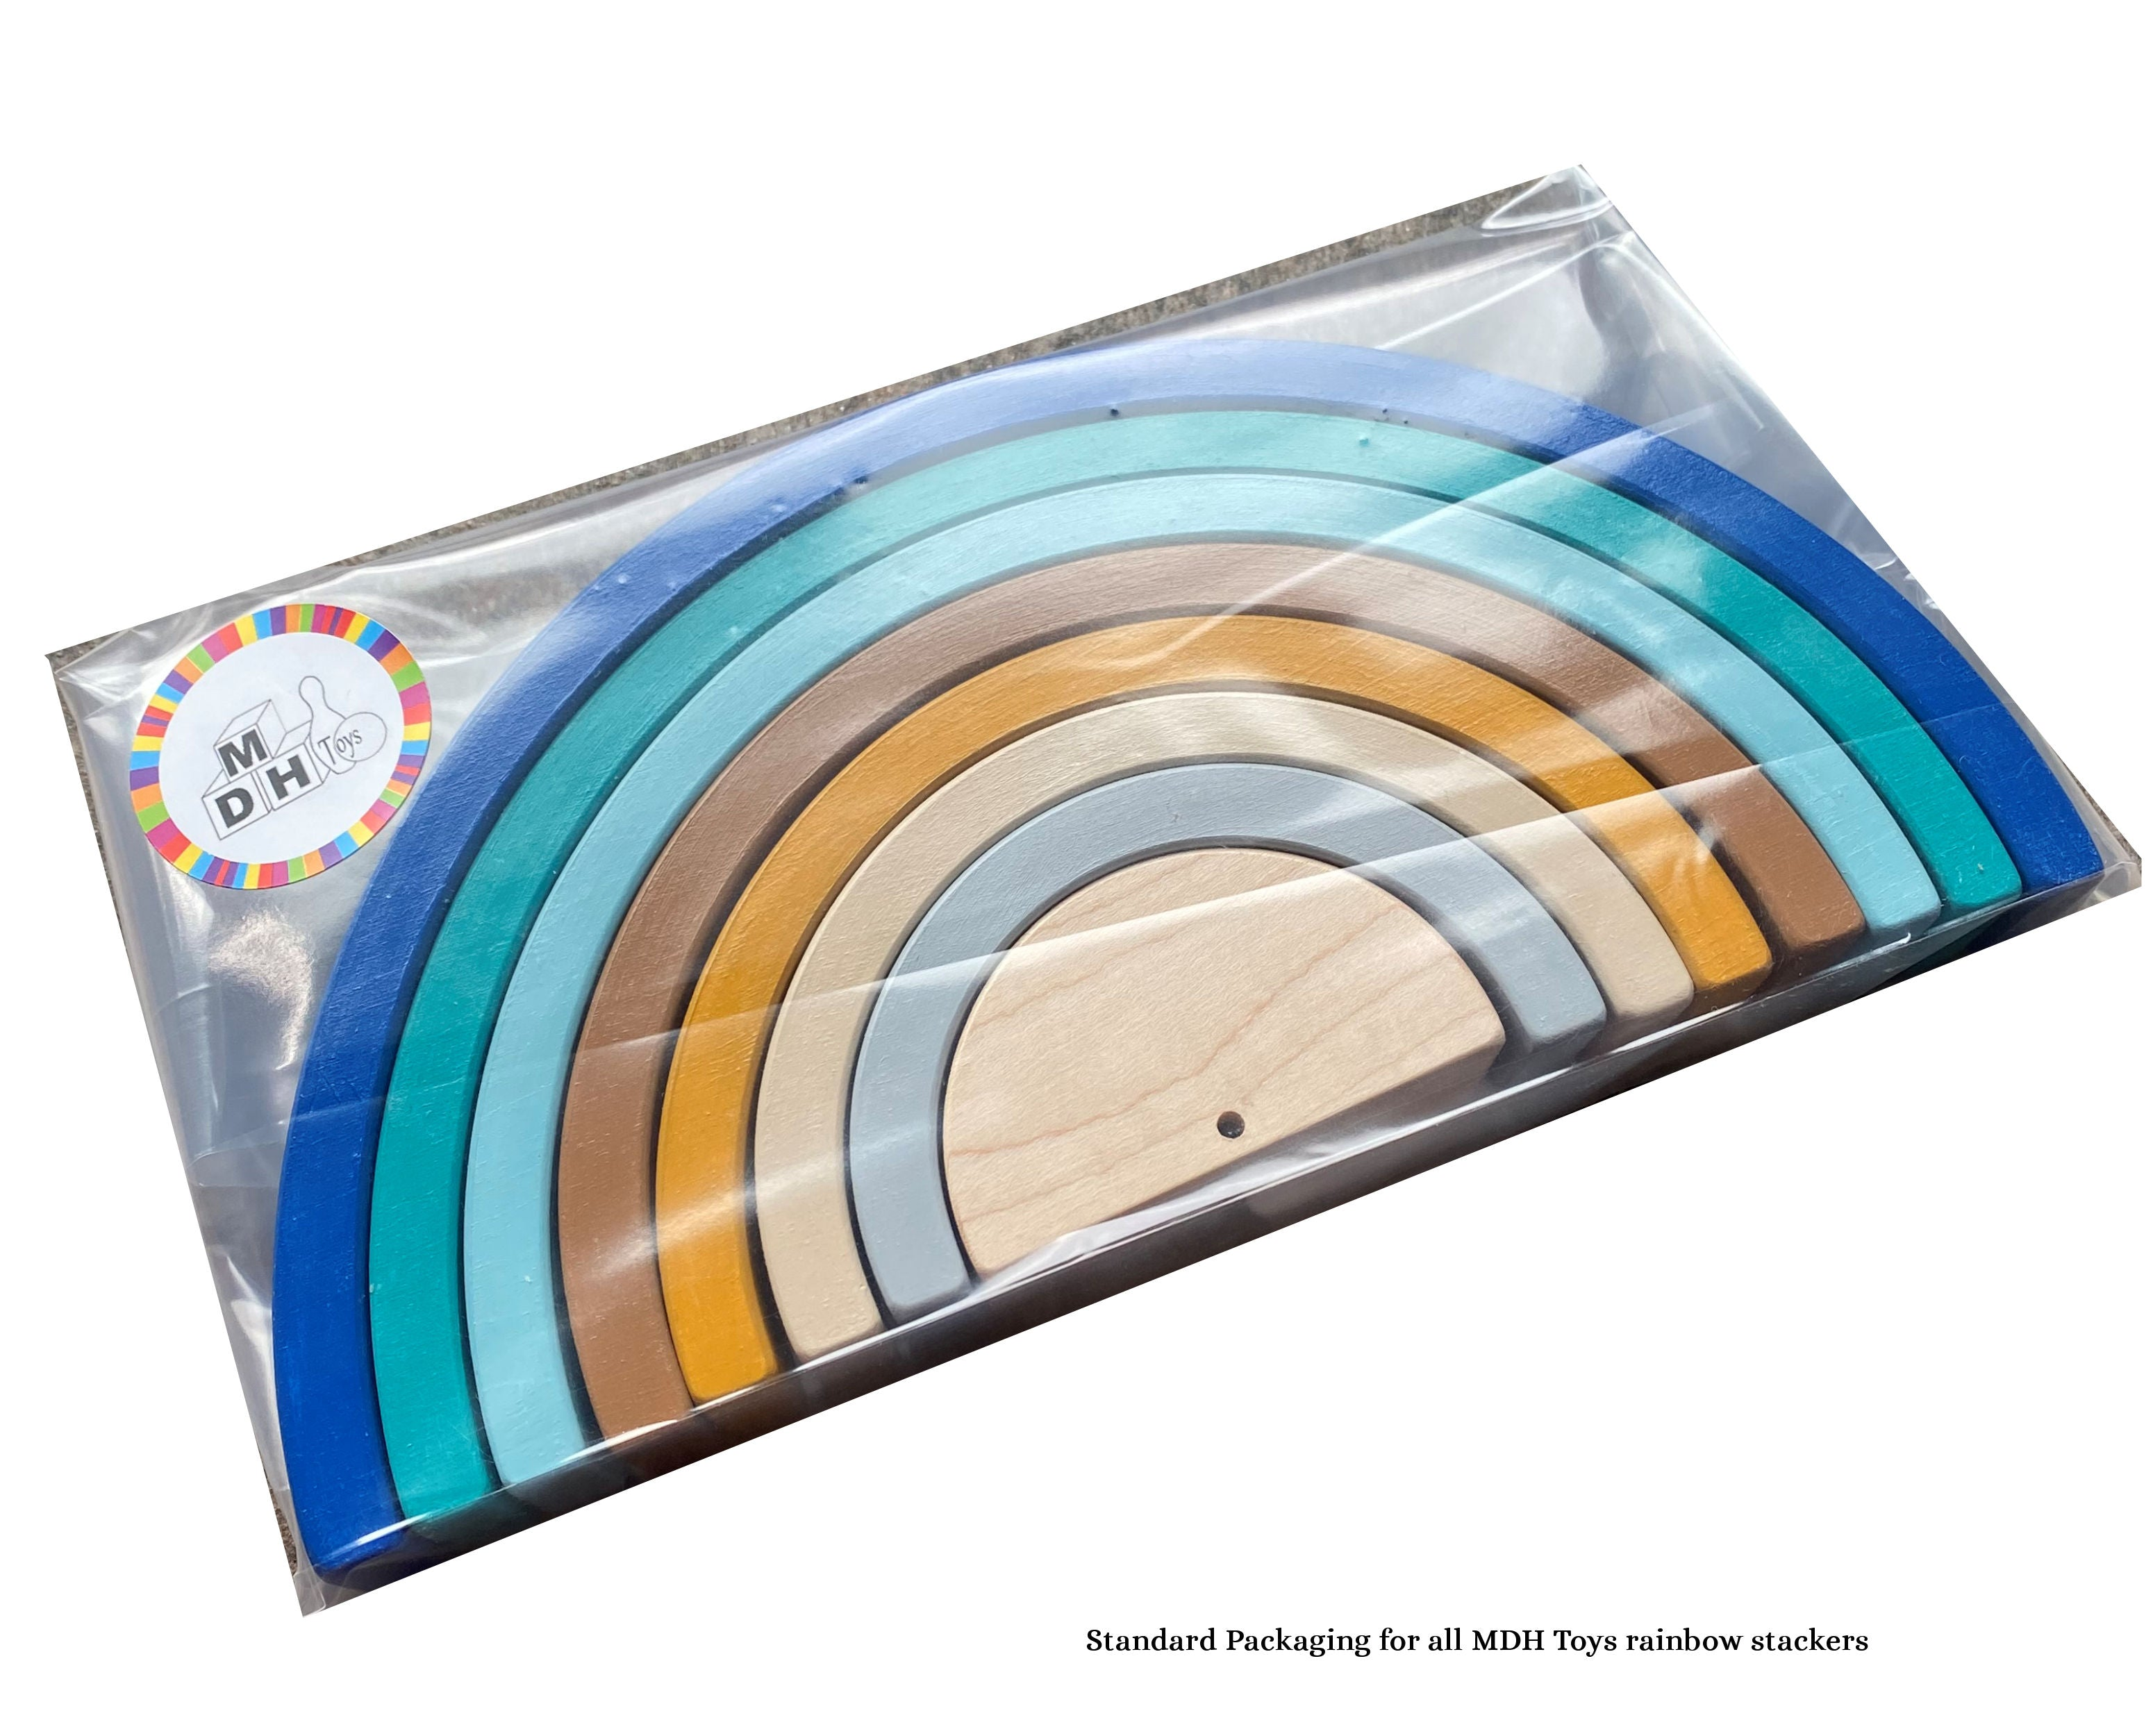 MDH Toys standard packaging for wooden rainbows